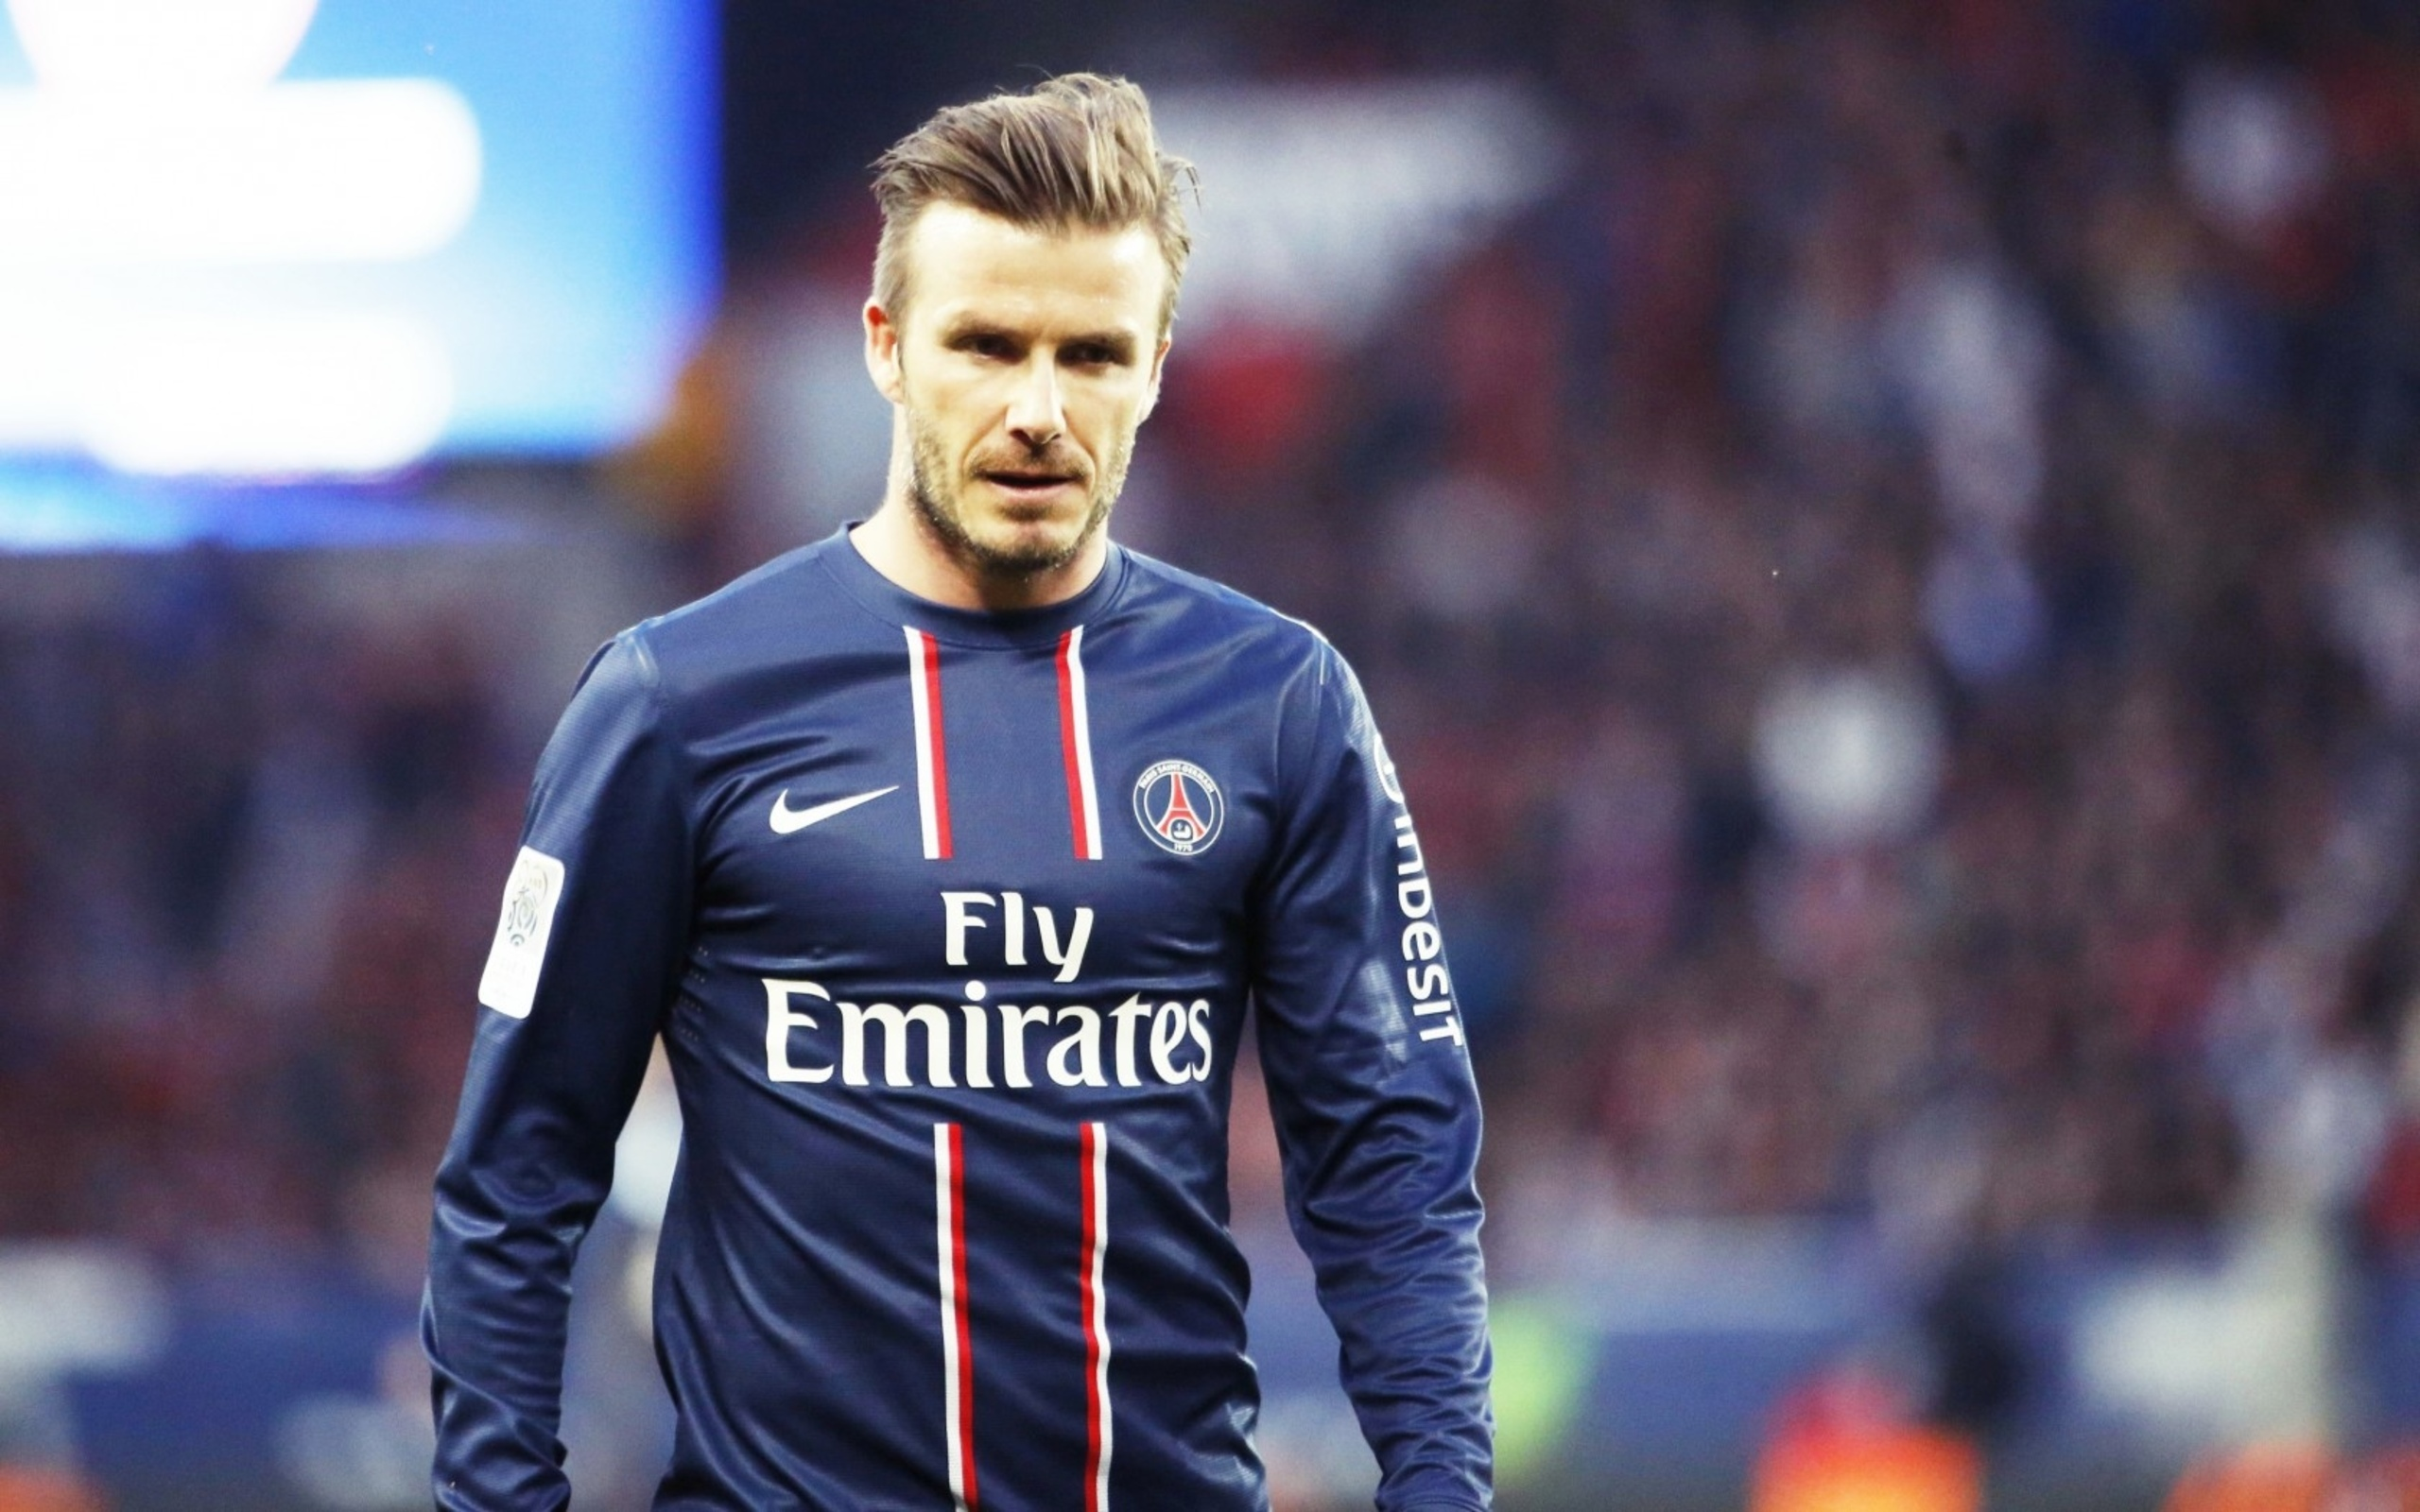 David Beckham Computer Wallpapers Desktop Backgrounds 2560x1600